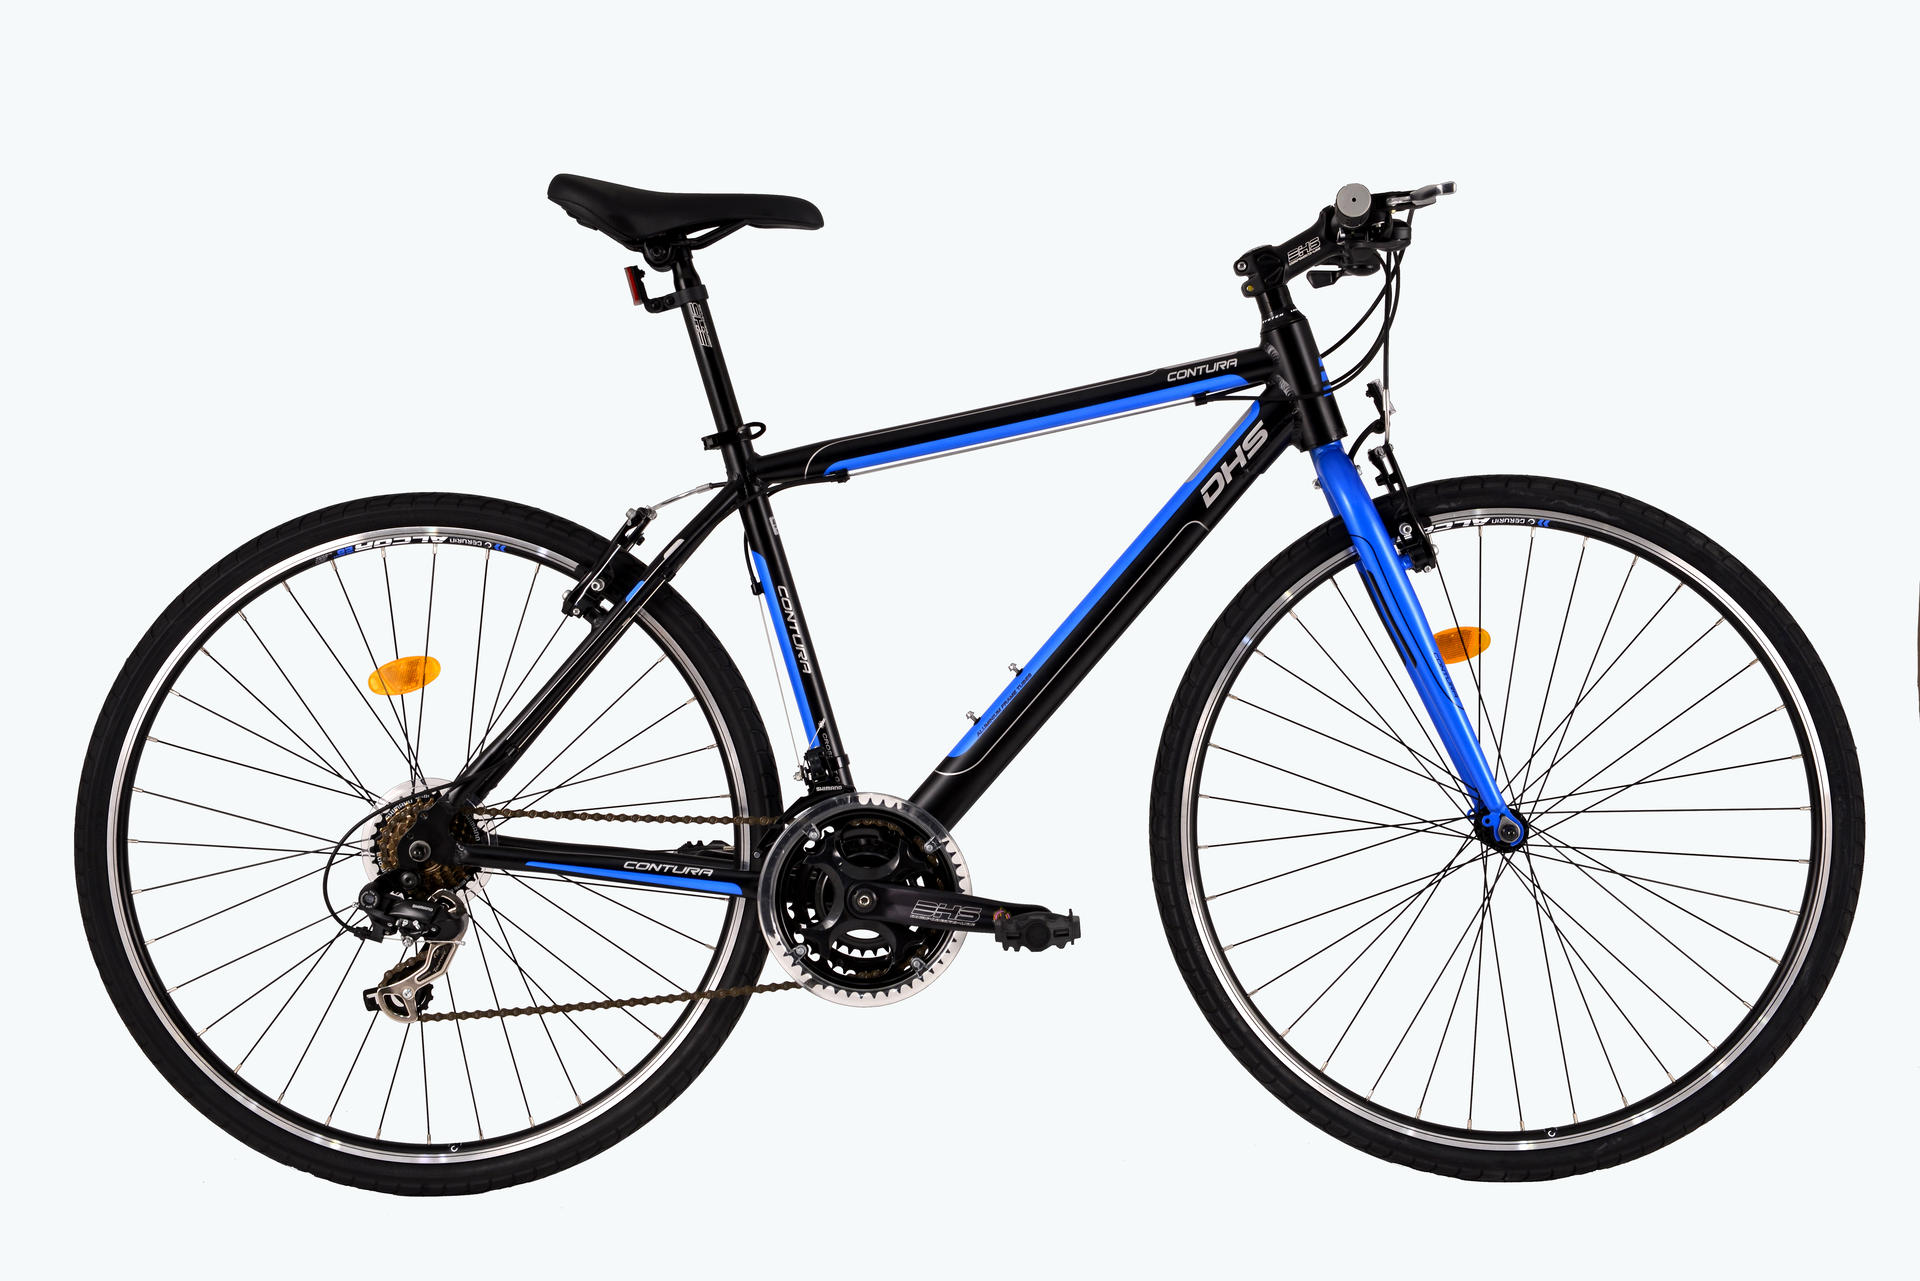 Bicicletta uomo da cross DHS 2863 Black 530mm